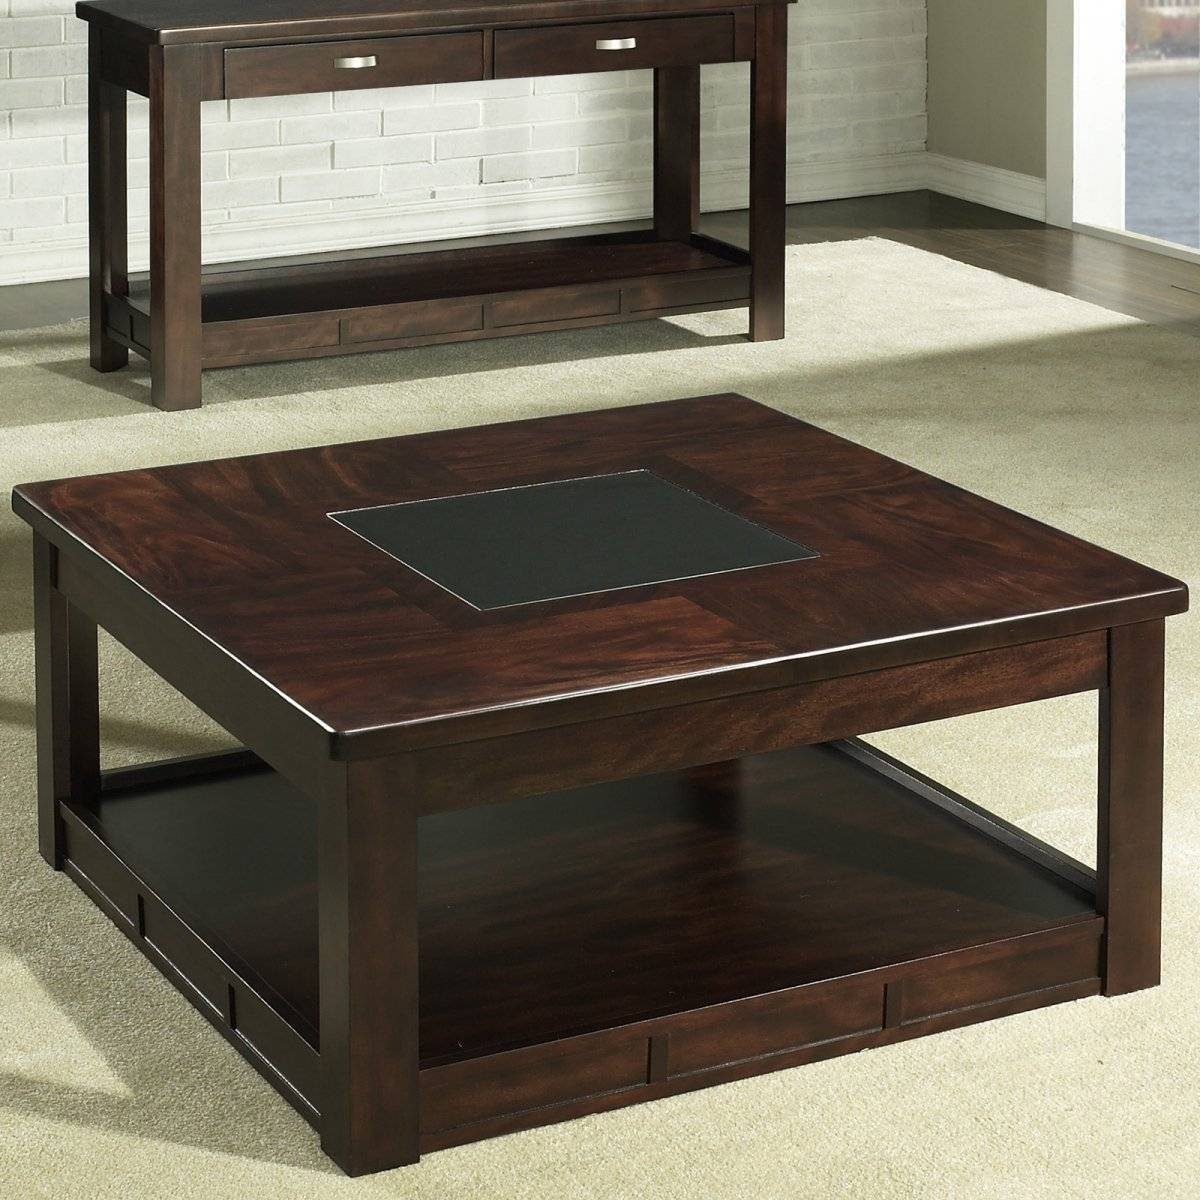 Square Wood Coffee Table With Drawers And Glass Top – Jericho In Square Coffee Tables (View 29 of 30)